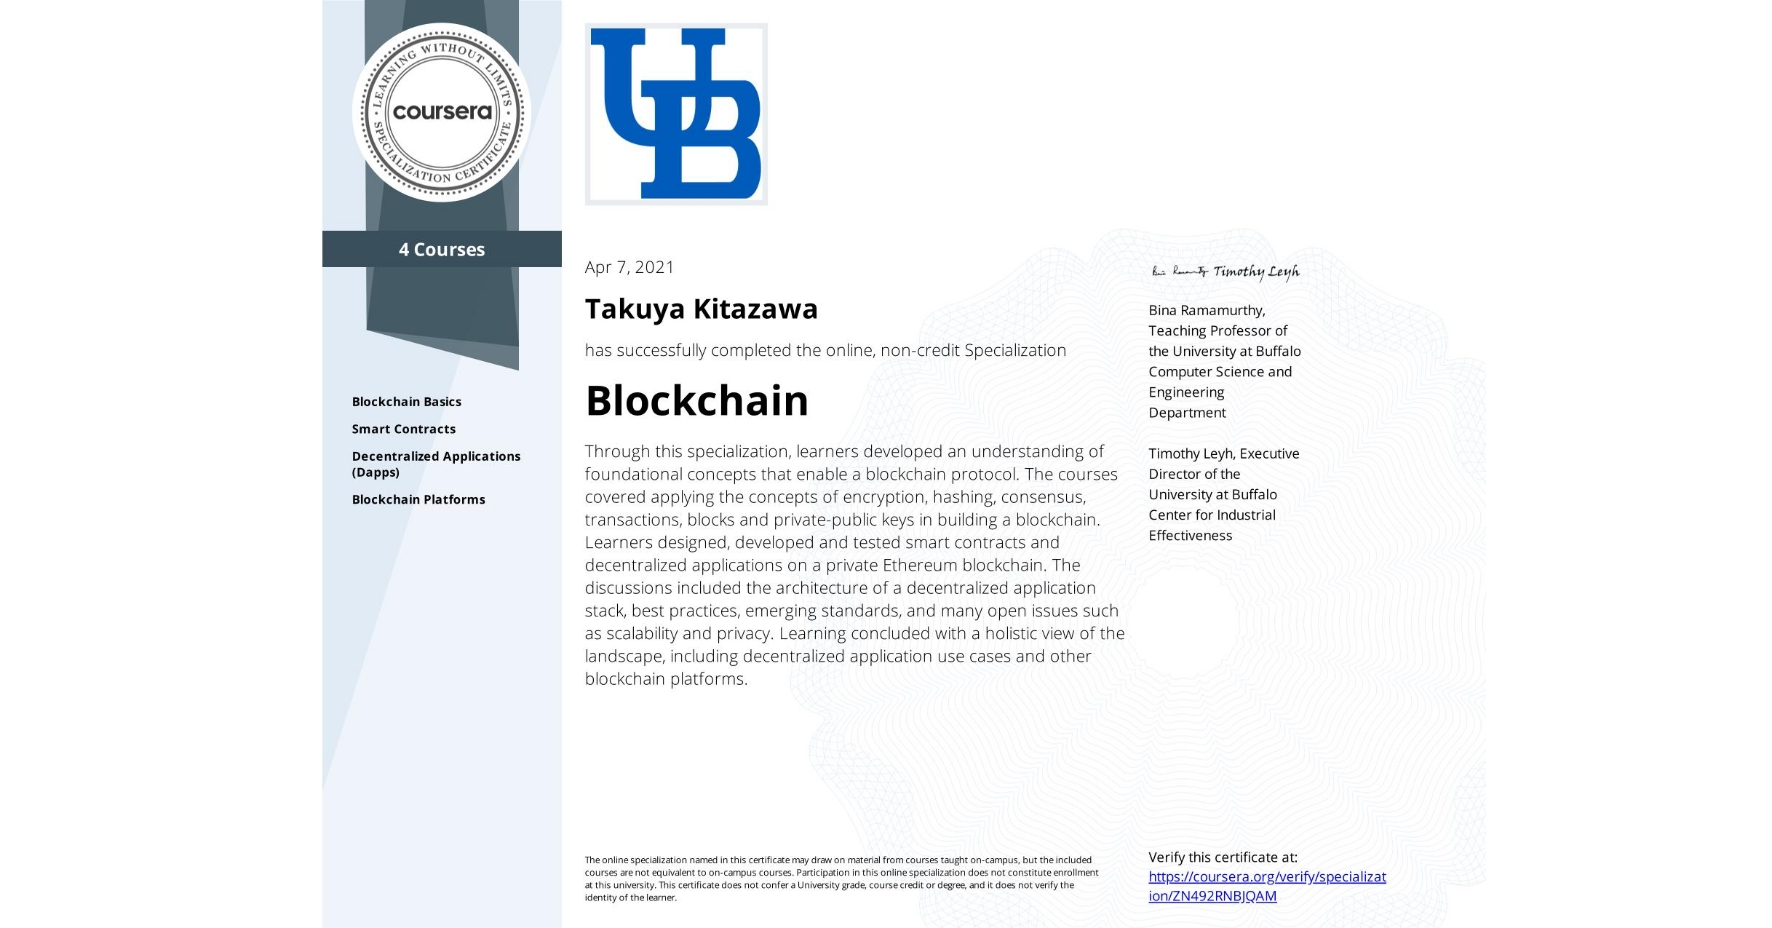 View certificate for Takuya Kitazawa, Blockchain, offered through Coursera. Through this specialization, learners developed an understanding of foundational concepts that enable a blockchain protocol. The courses covered applying the concepts of encryption, hashing, consensus, transactions, blocks and private-public keys in building a blockchain. Learners designed, developed and tested smart contracts and decentralized applications on a private Ethereum blockchain. The discussions included the architecture of a decentralized application stack, best practices, emerging standards, and many open issues such as scalability and privacy. Learning concluded with a holistic view of the landscape, including decentralized application use cases and other blockchain platforms.